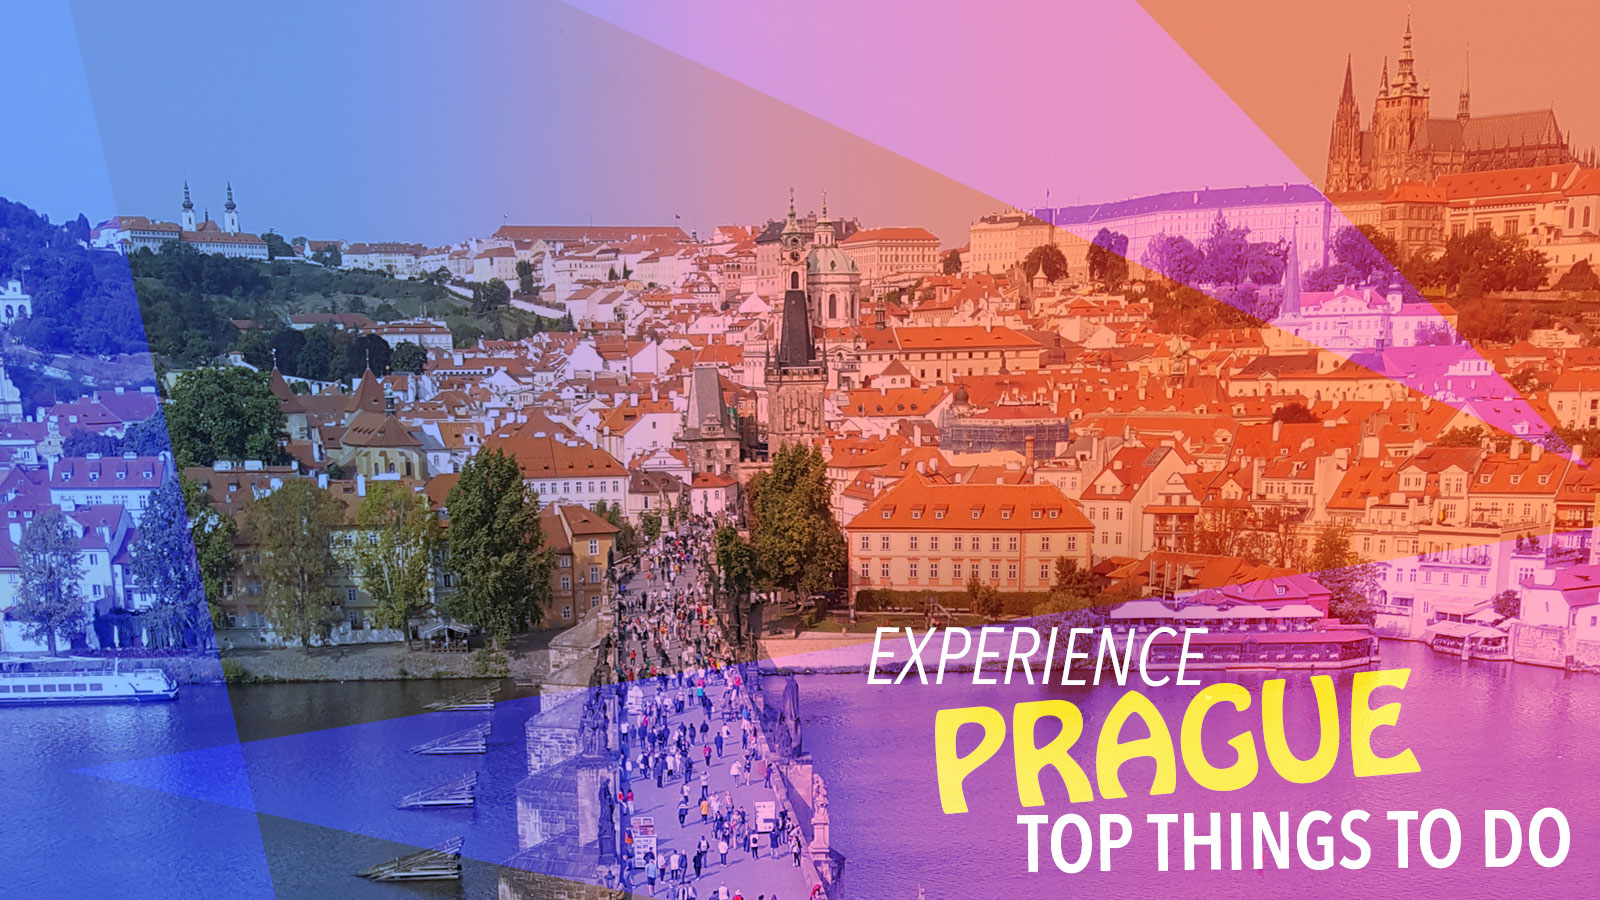 Experience Prague Top things to do and see